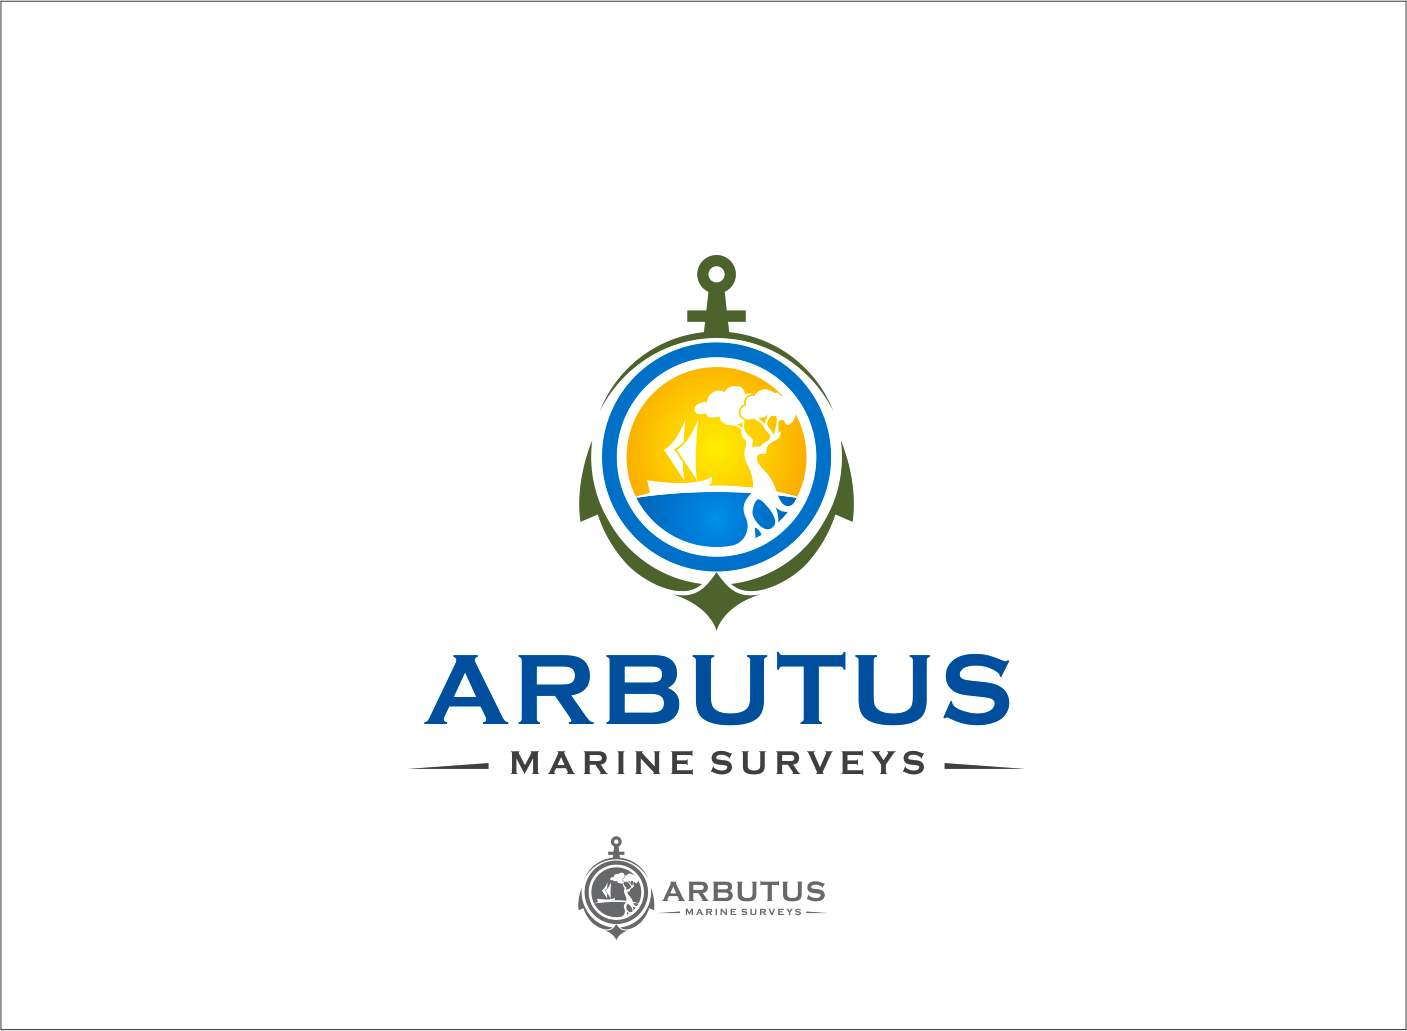 Logo Design by Armada Jamaluddin - Entry No. 43 in the Logo Design Contest Professional Business Logo Design for Arbutus Marine Surveys.